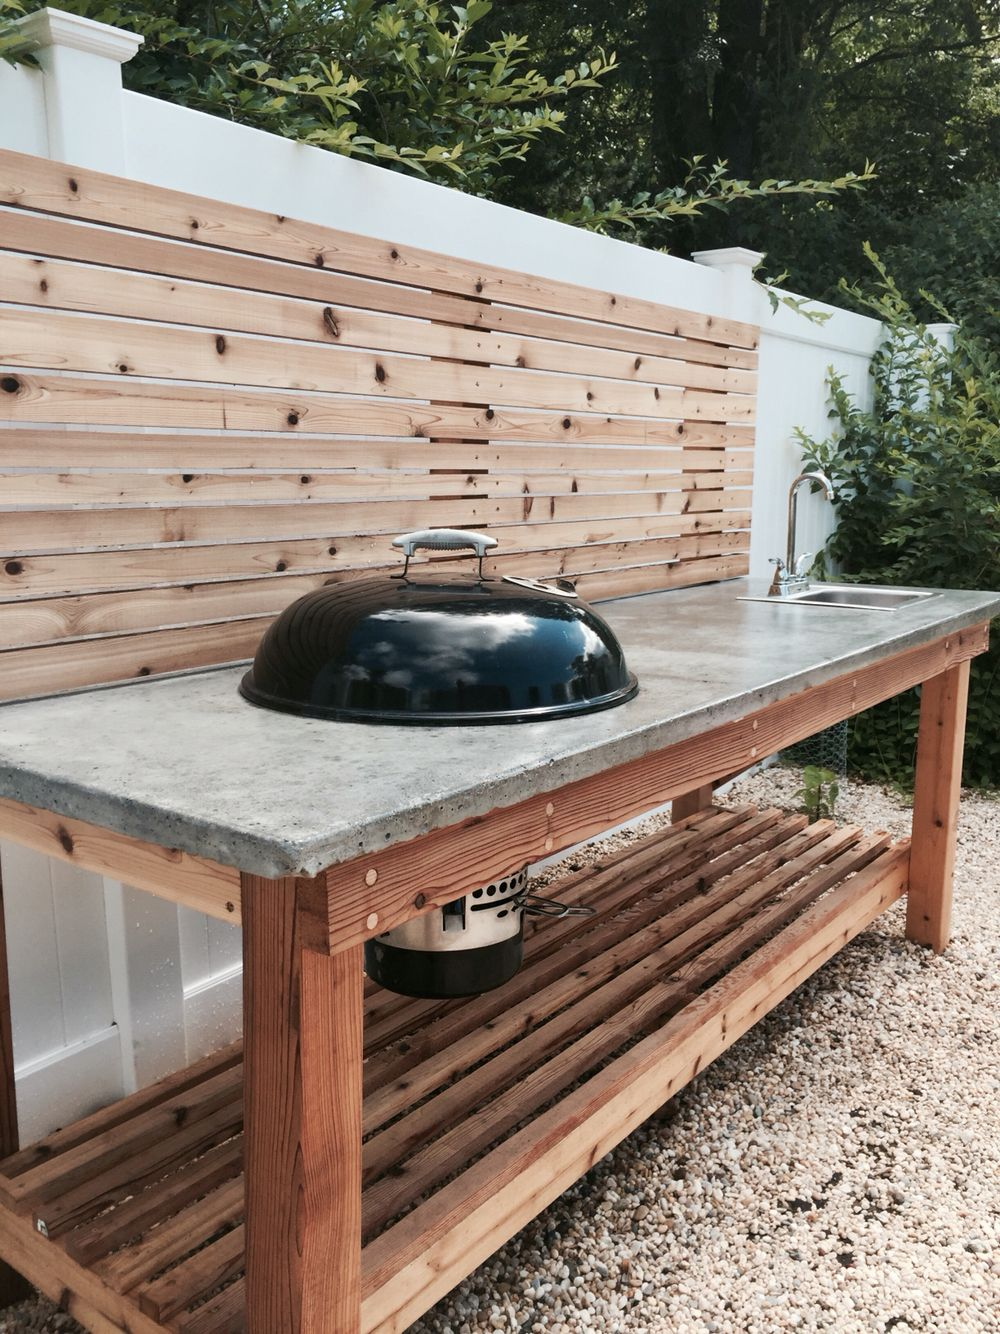 Weber Grill Outdoor Küche Cedar Wood Outdoor Kitchen With A Concrete Countertop And Built In